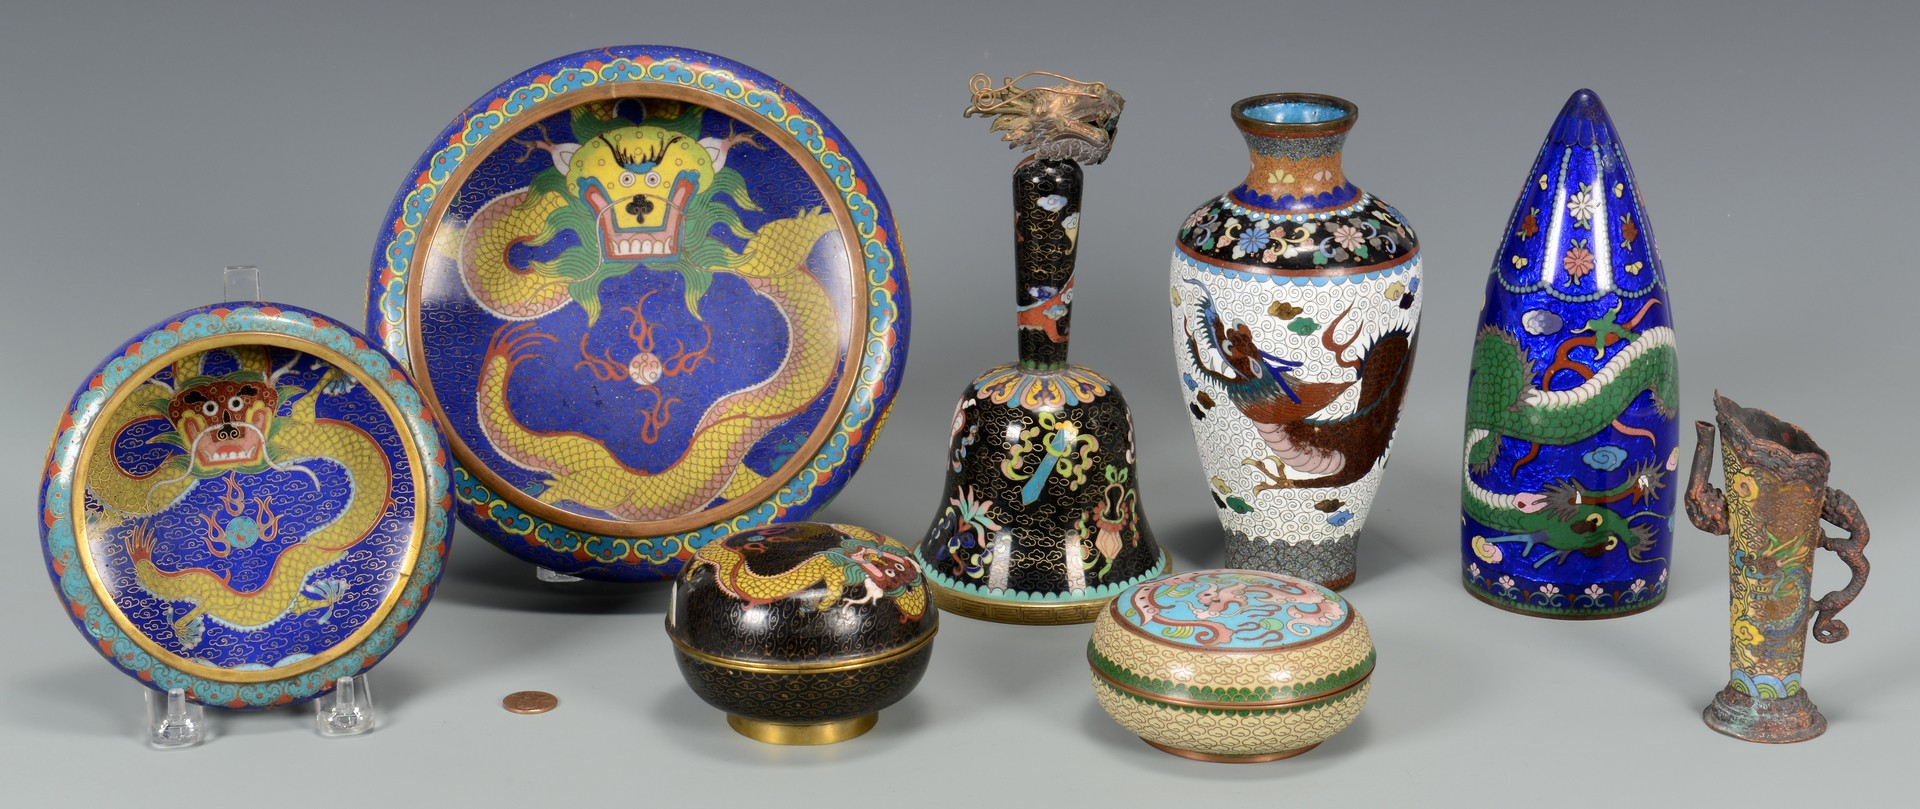 Lot 3594207: 8 Cloisonne Items incl Bell